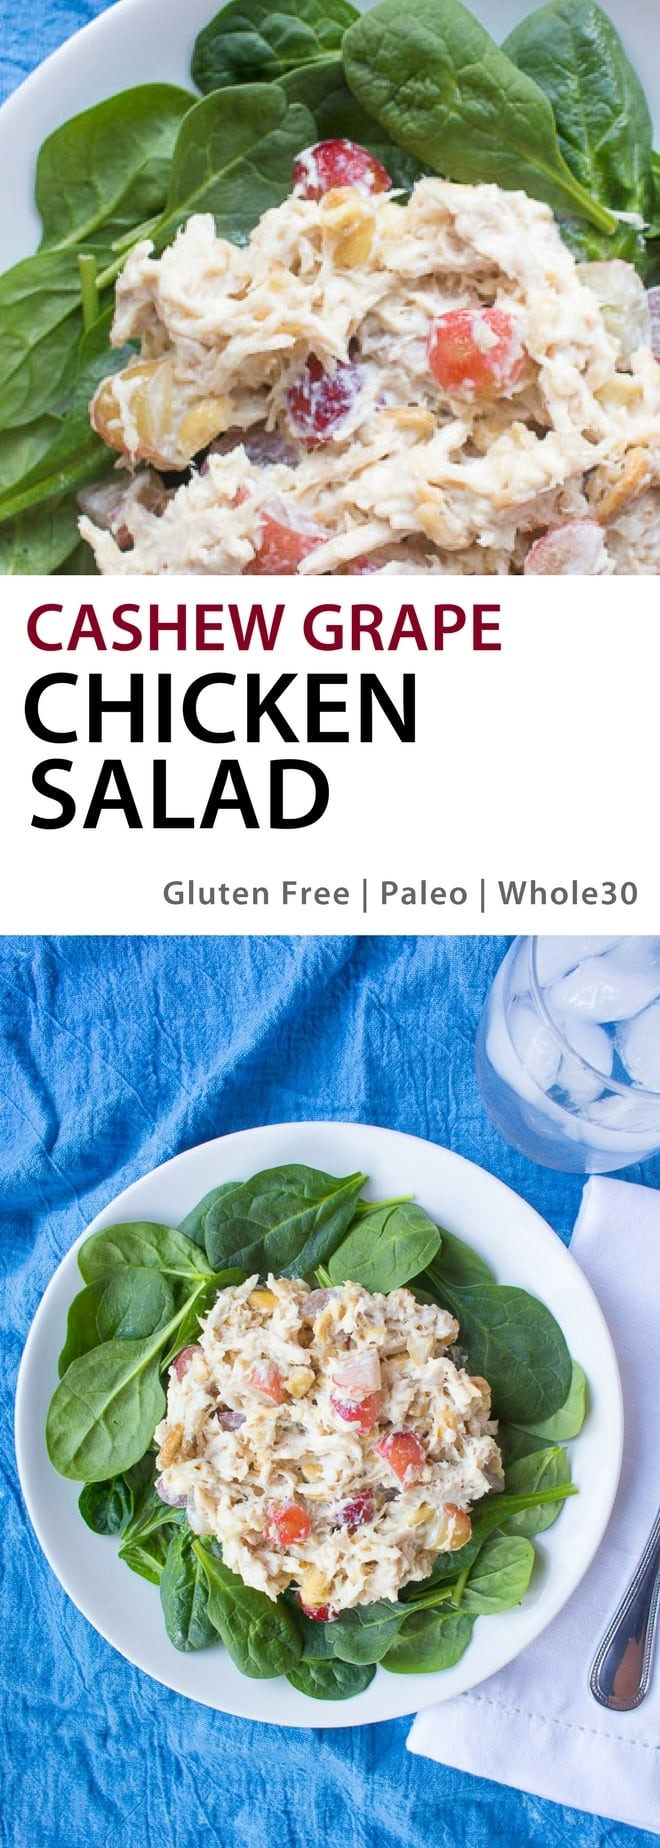 Cashew Grape Chicken Salad